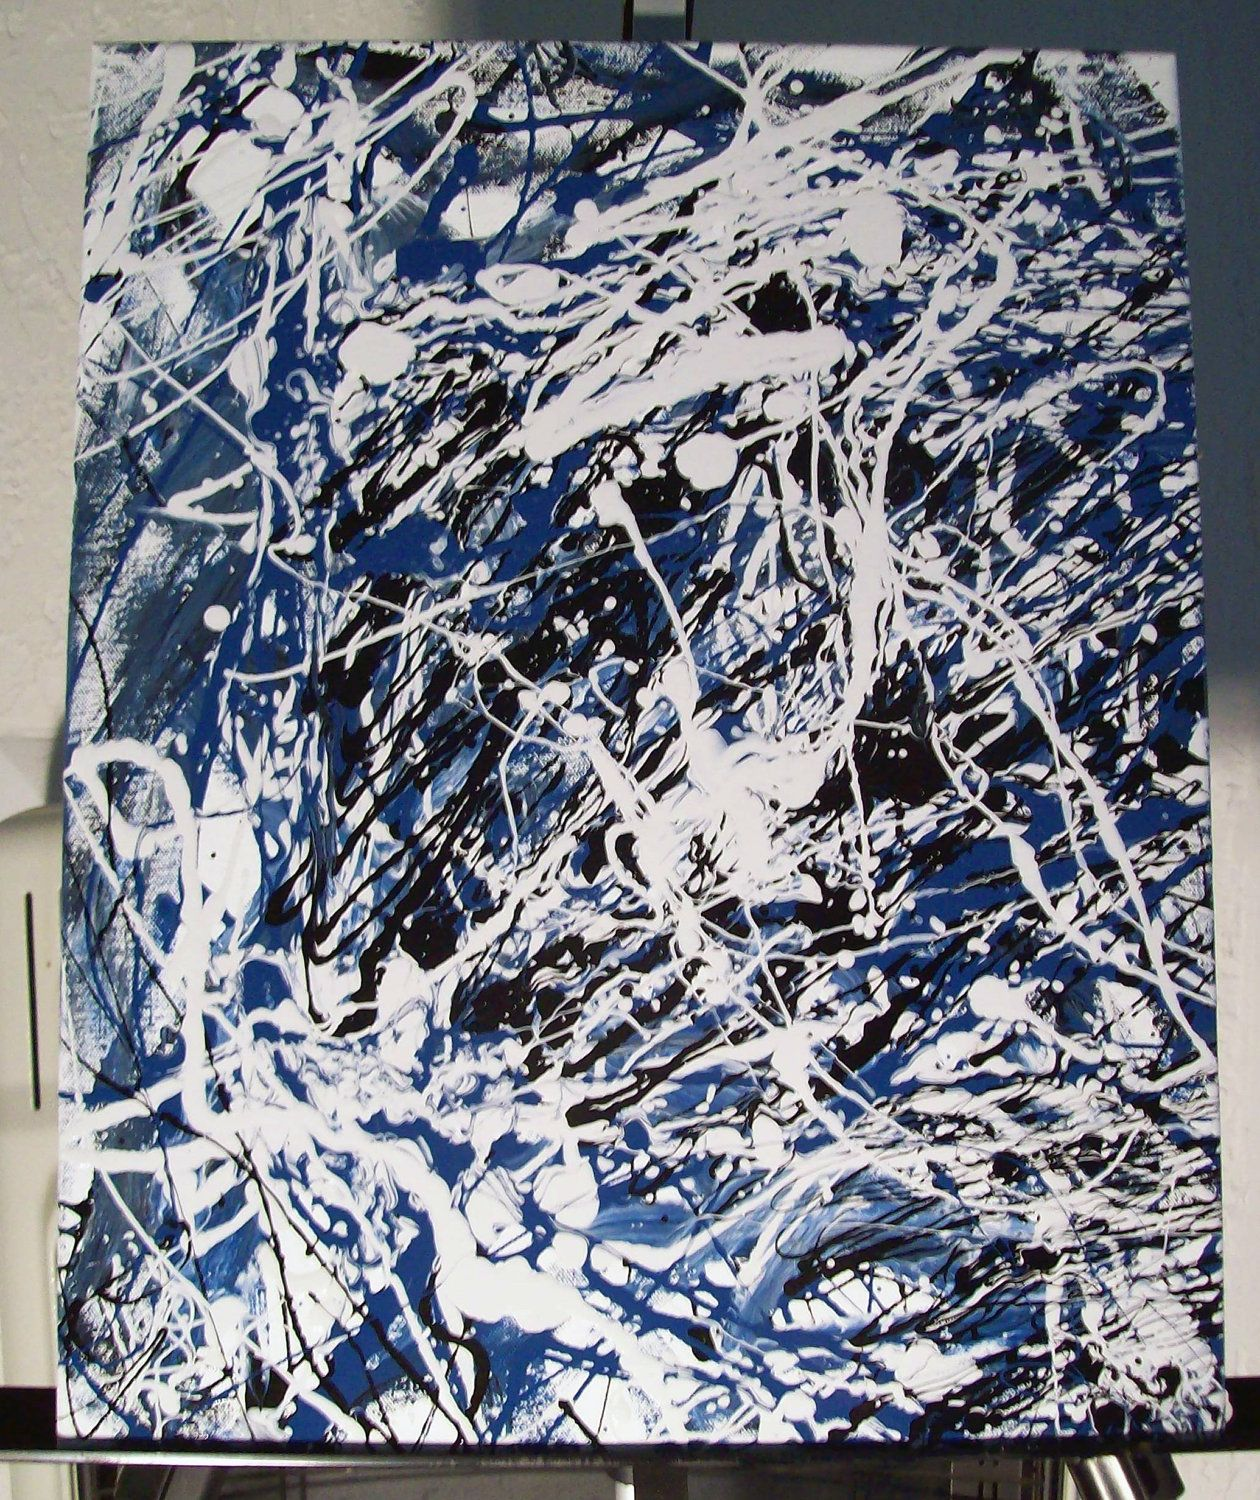 white light by jackson pollock jackson pollock painted white abstract expressionism original painting on canvas drip painting jackson pollock style ice 16x20 by matthew hatley